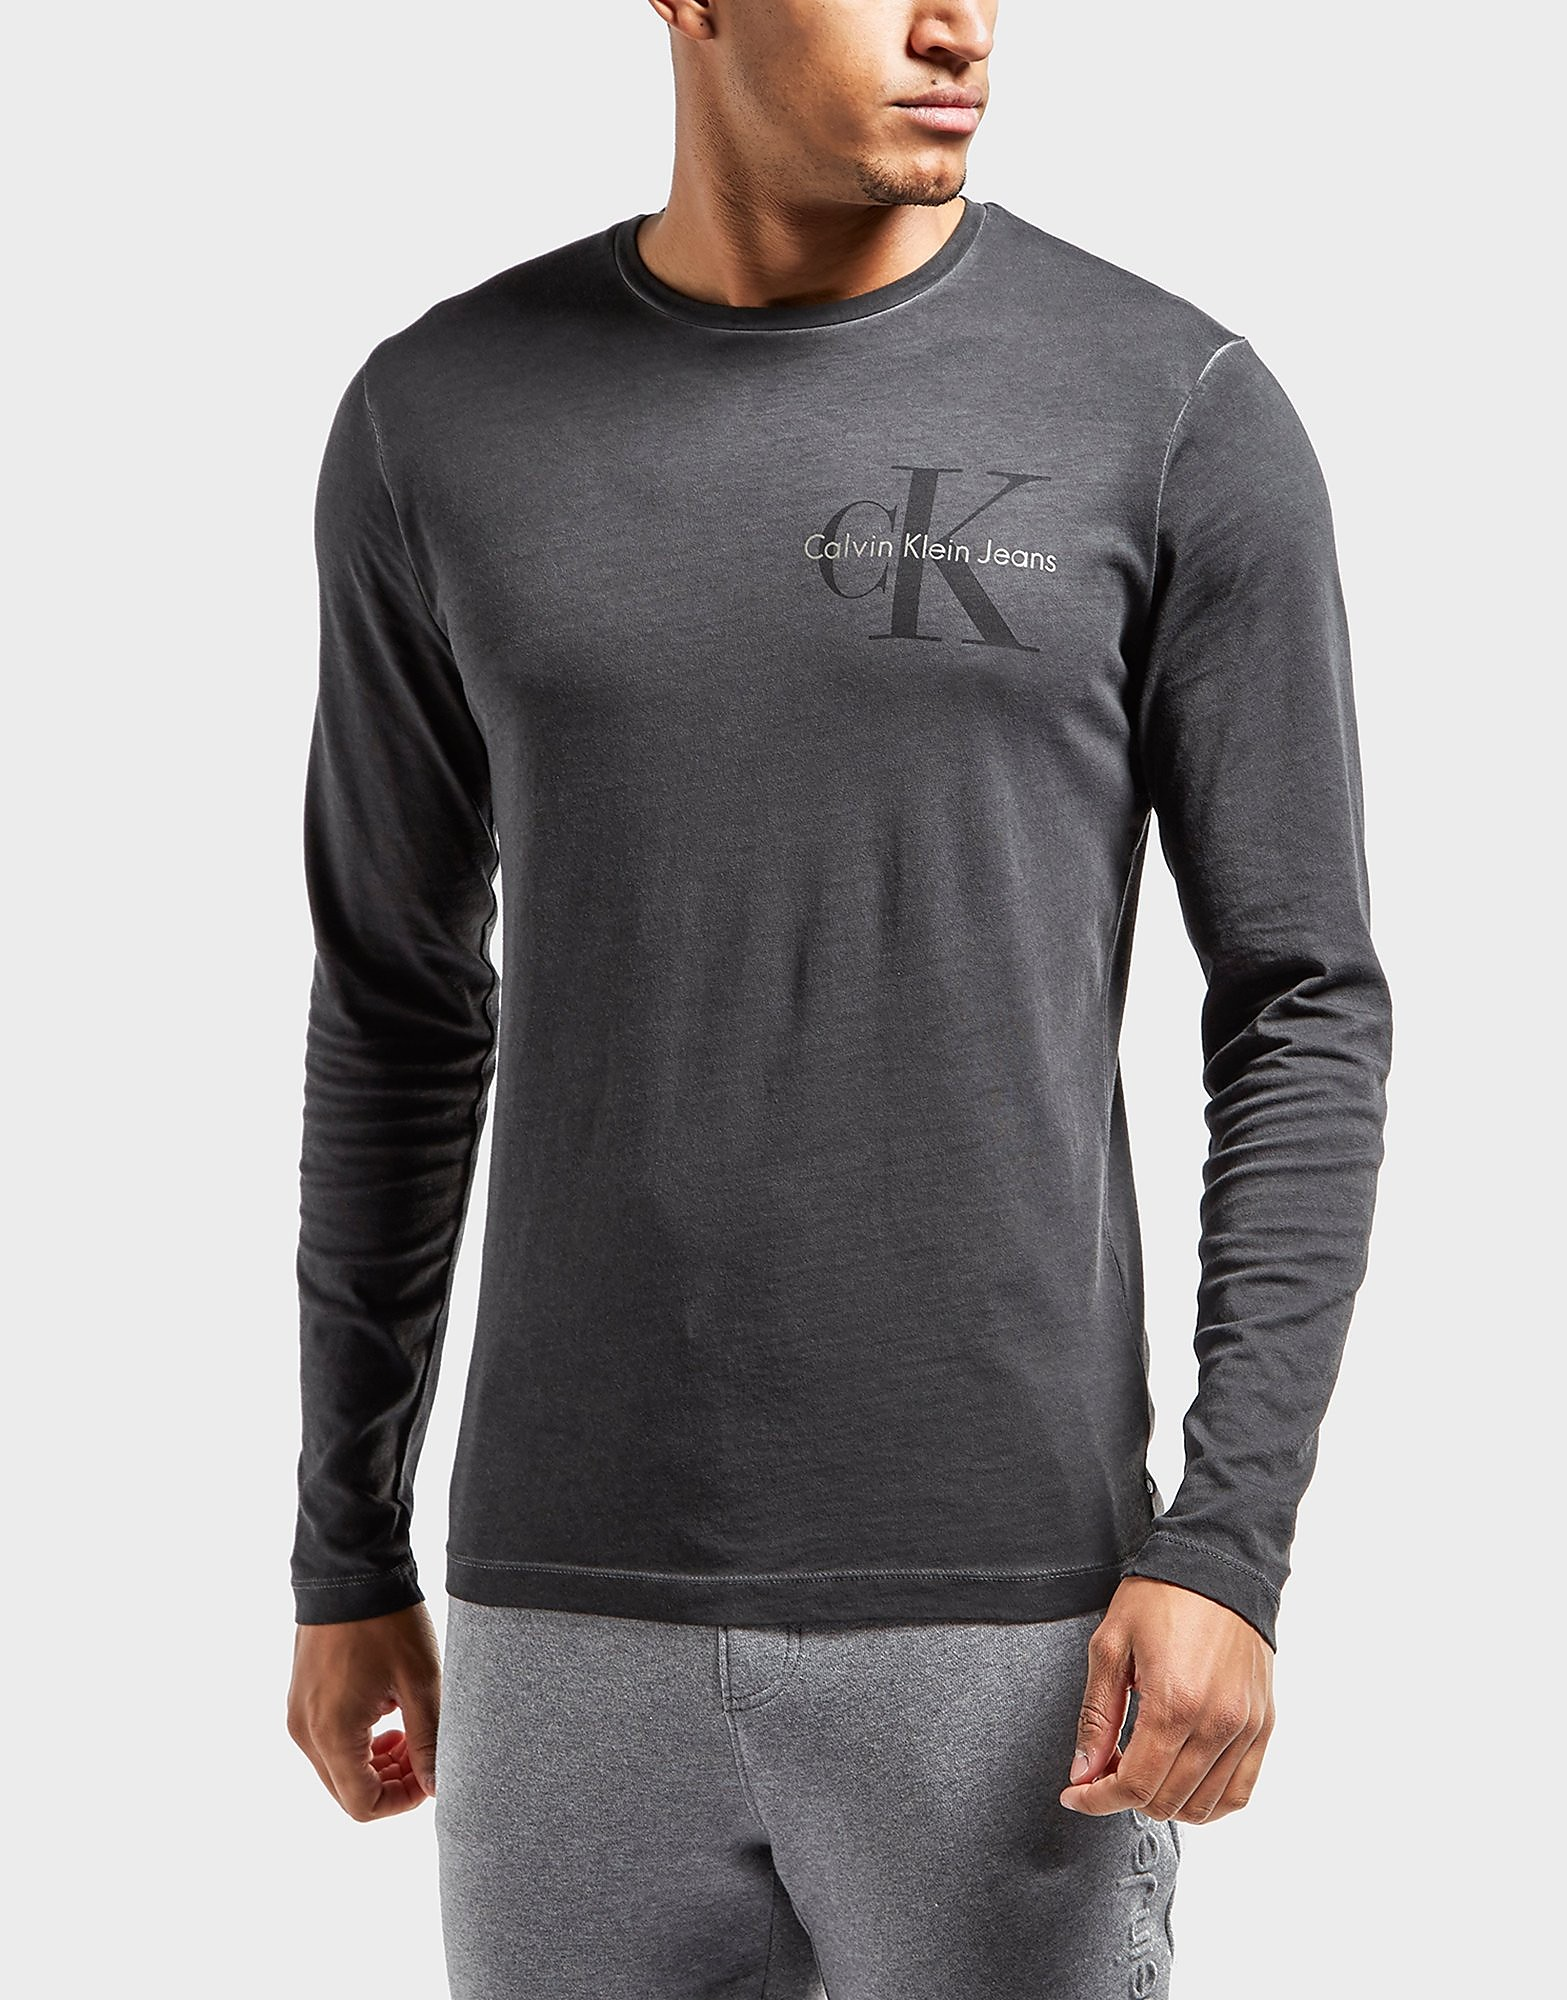 Calvin Klein Tribute 2 Long Sleeve T-Shirt